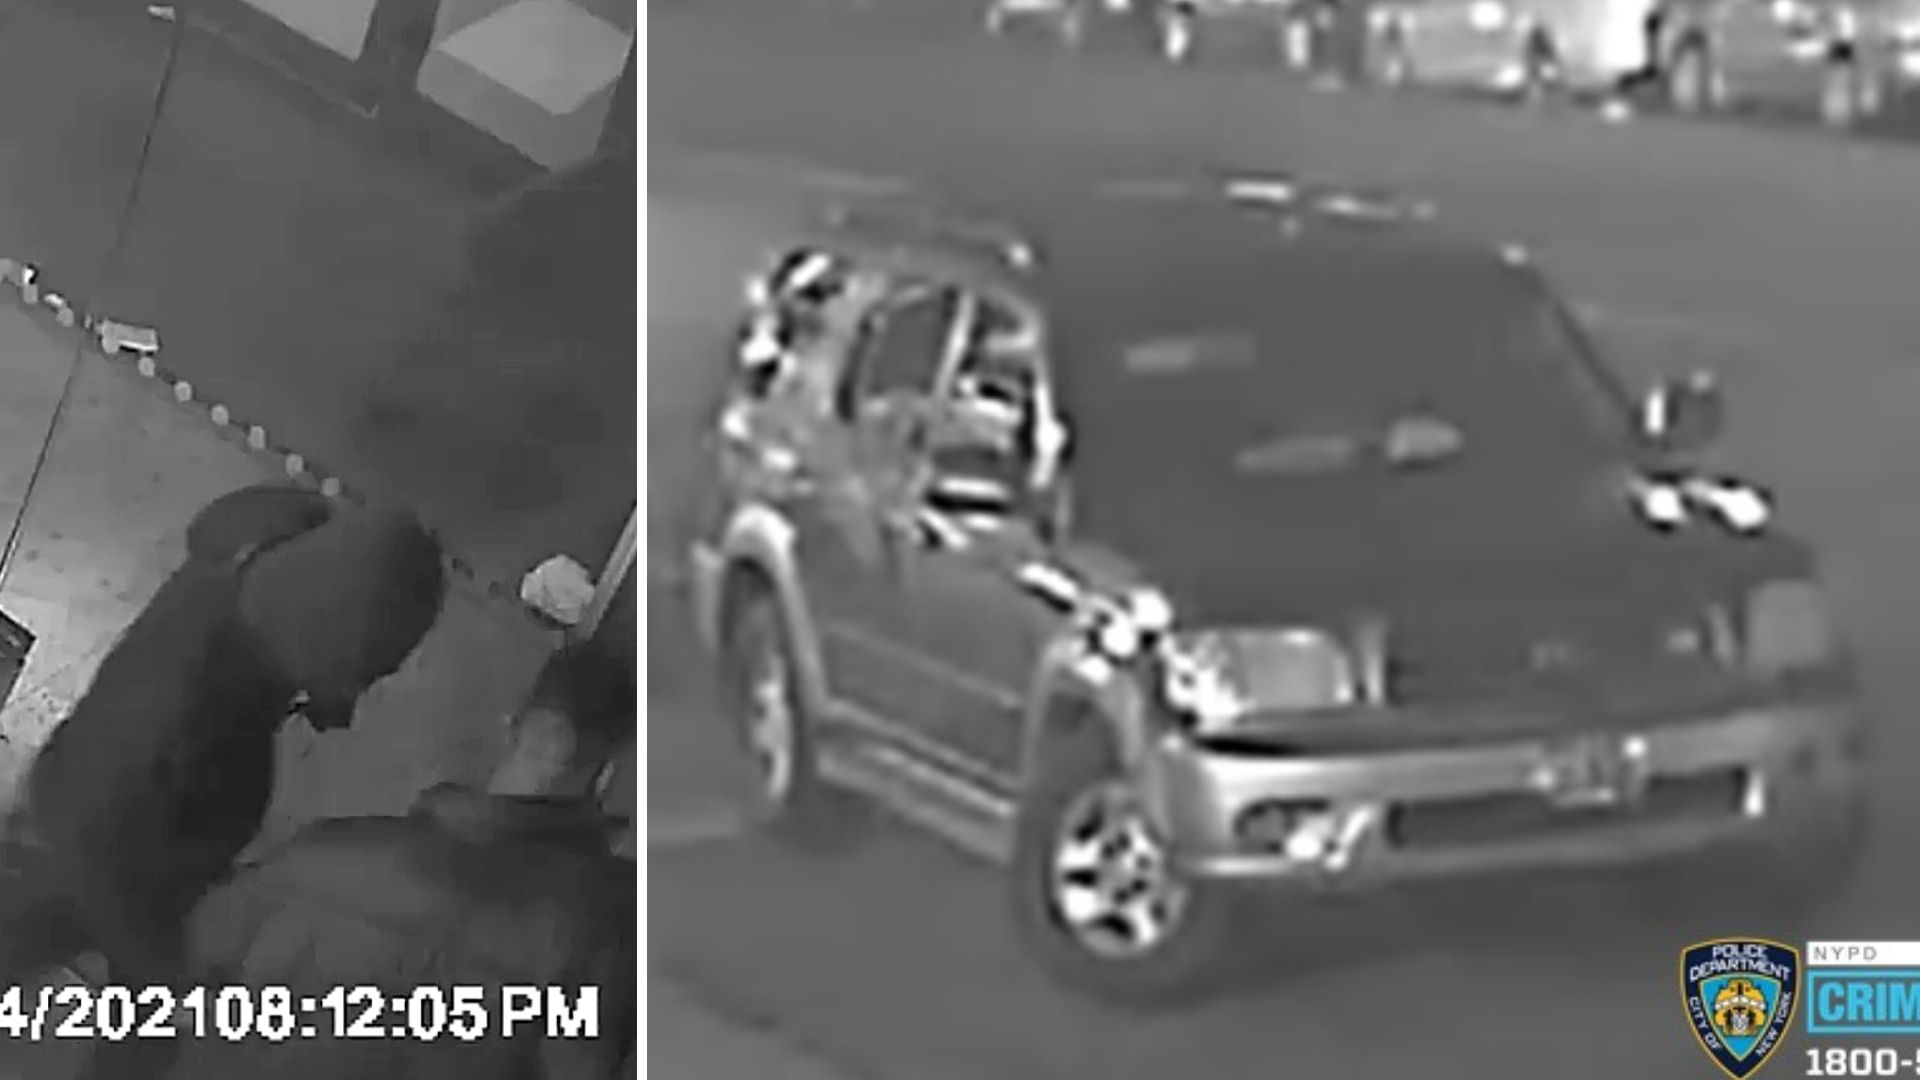 Surveillance image of two people wanted for attacking and robbing a man on a Bronx street on April 4, 2021, police say; Surveillance image of the black SUV the two attackers fled in, according to the NYPD. (NYPD)